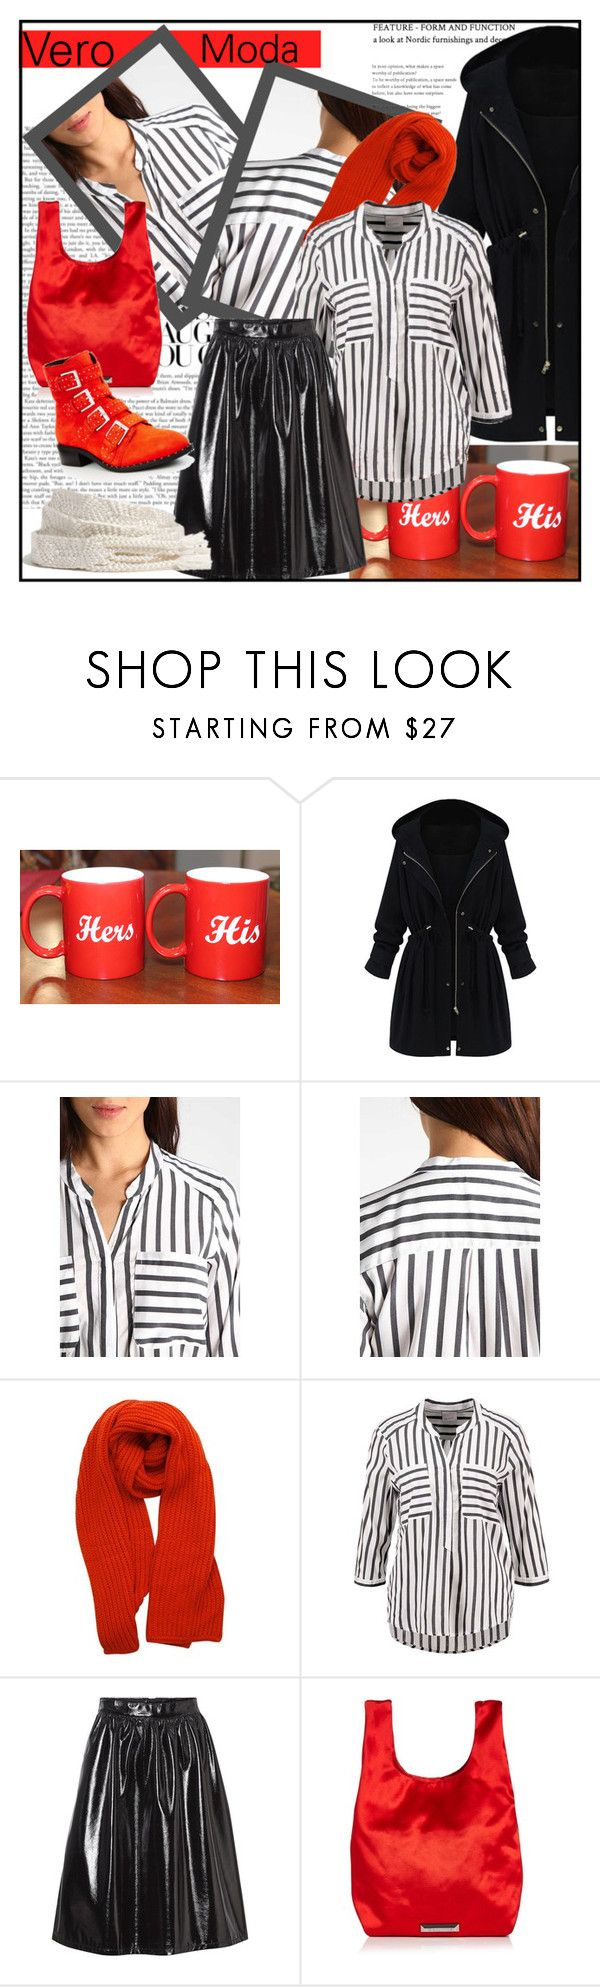 """""""Vero Moda"""" by din-sesantadue ❤ liked on Polyvore featuring WithChic, Vero Moda, HUGO and Kendall + Kylie"""